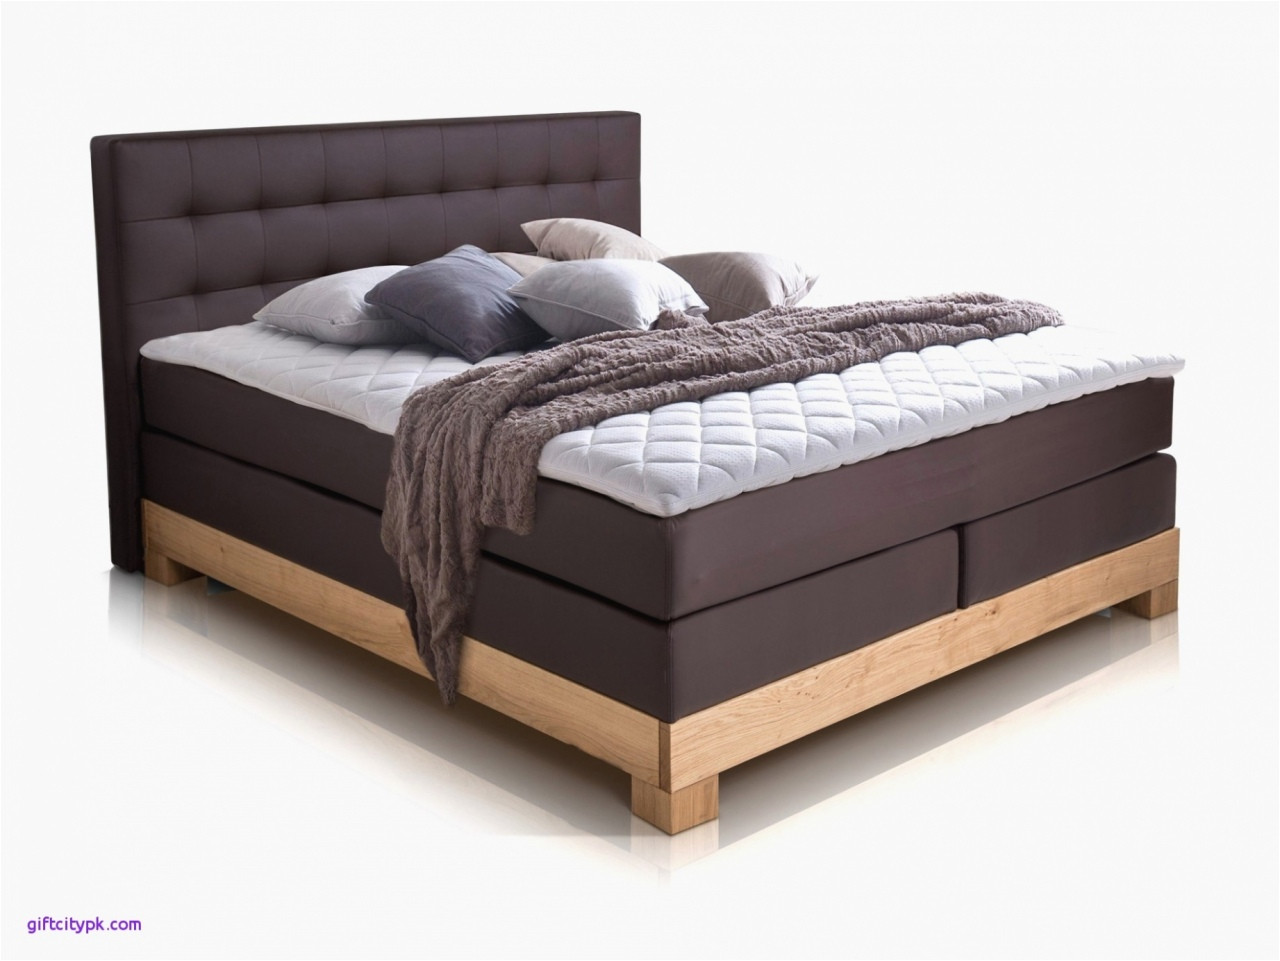 queen size bed frame queen daybed frame bramblesdinnerhouse